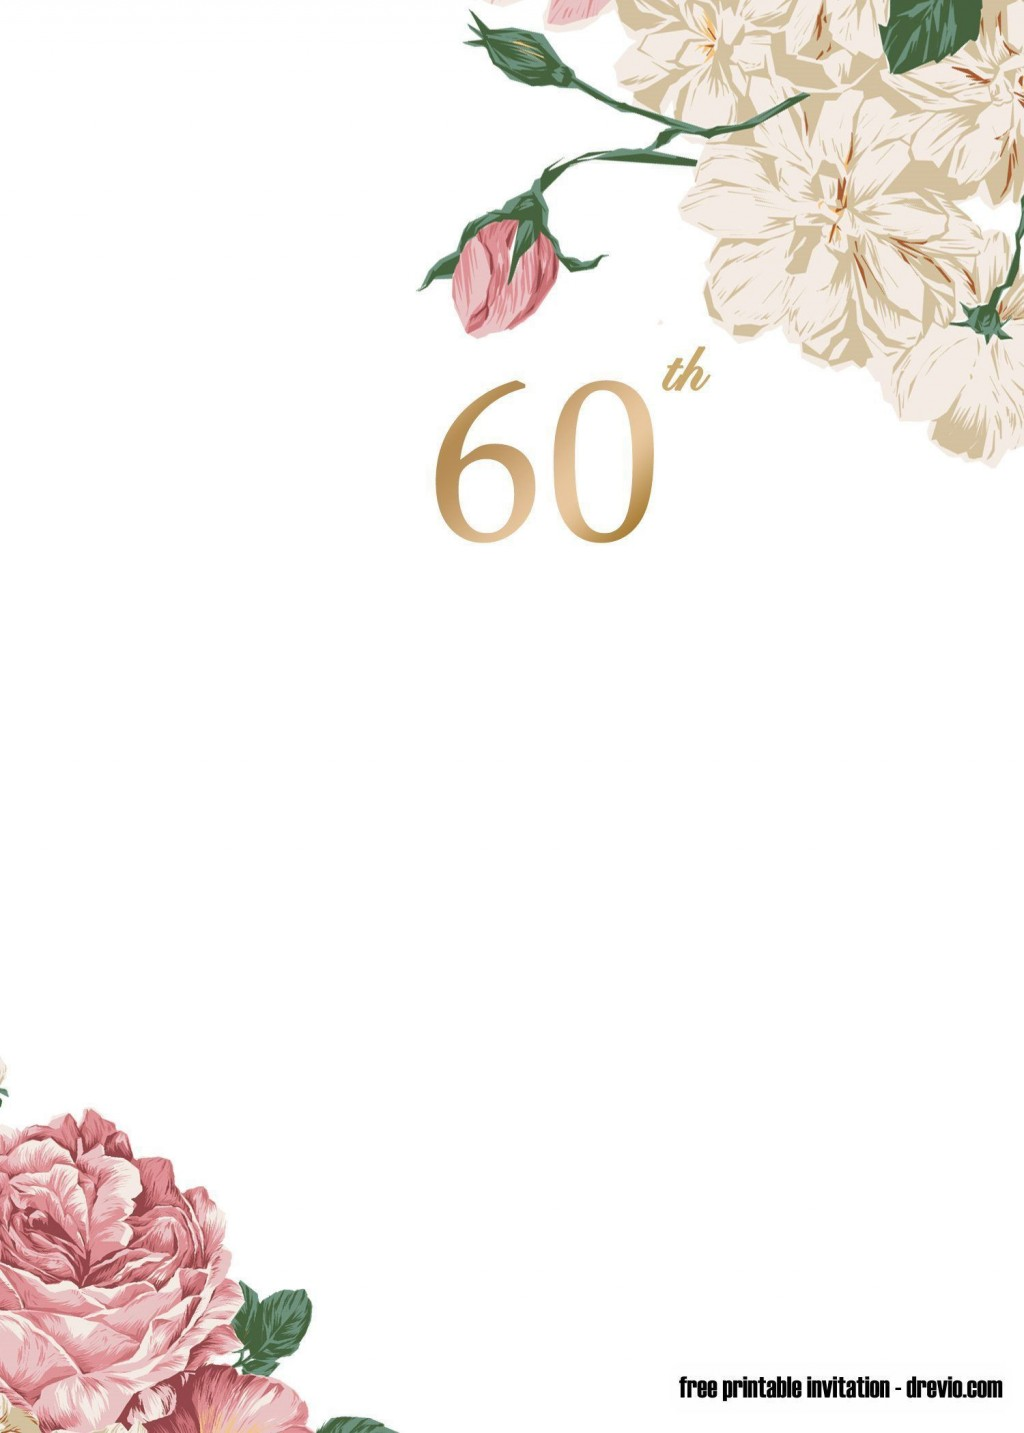 009 Excellent 60 Birthday Invite Template Picture  Templates 60th Printable FreeLarge